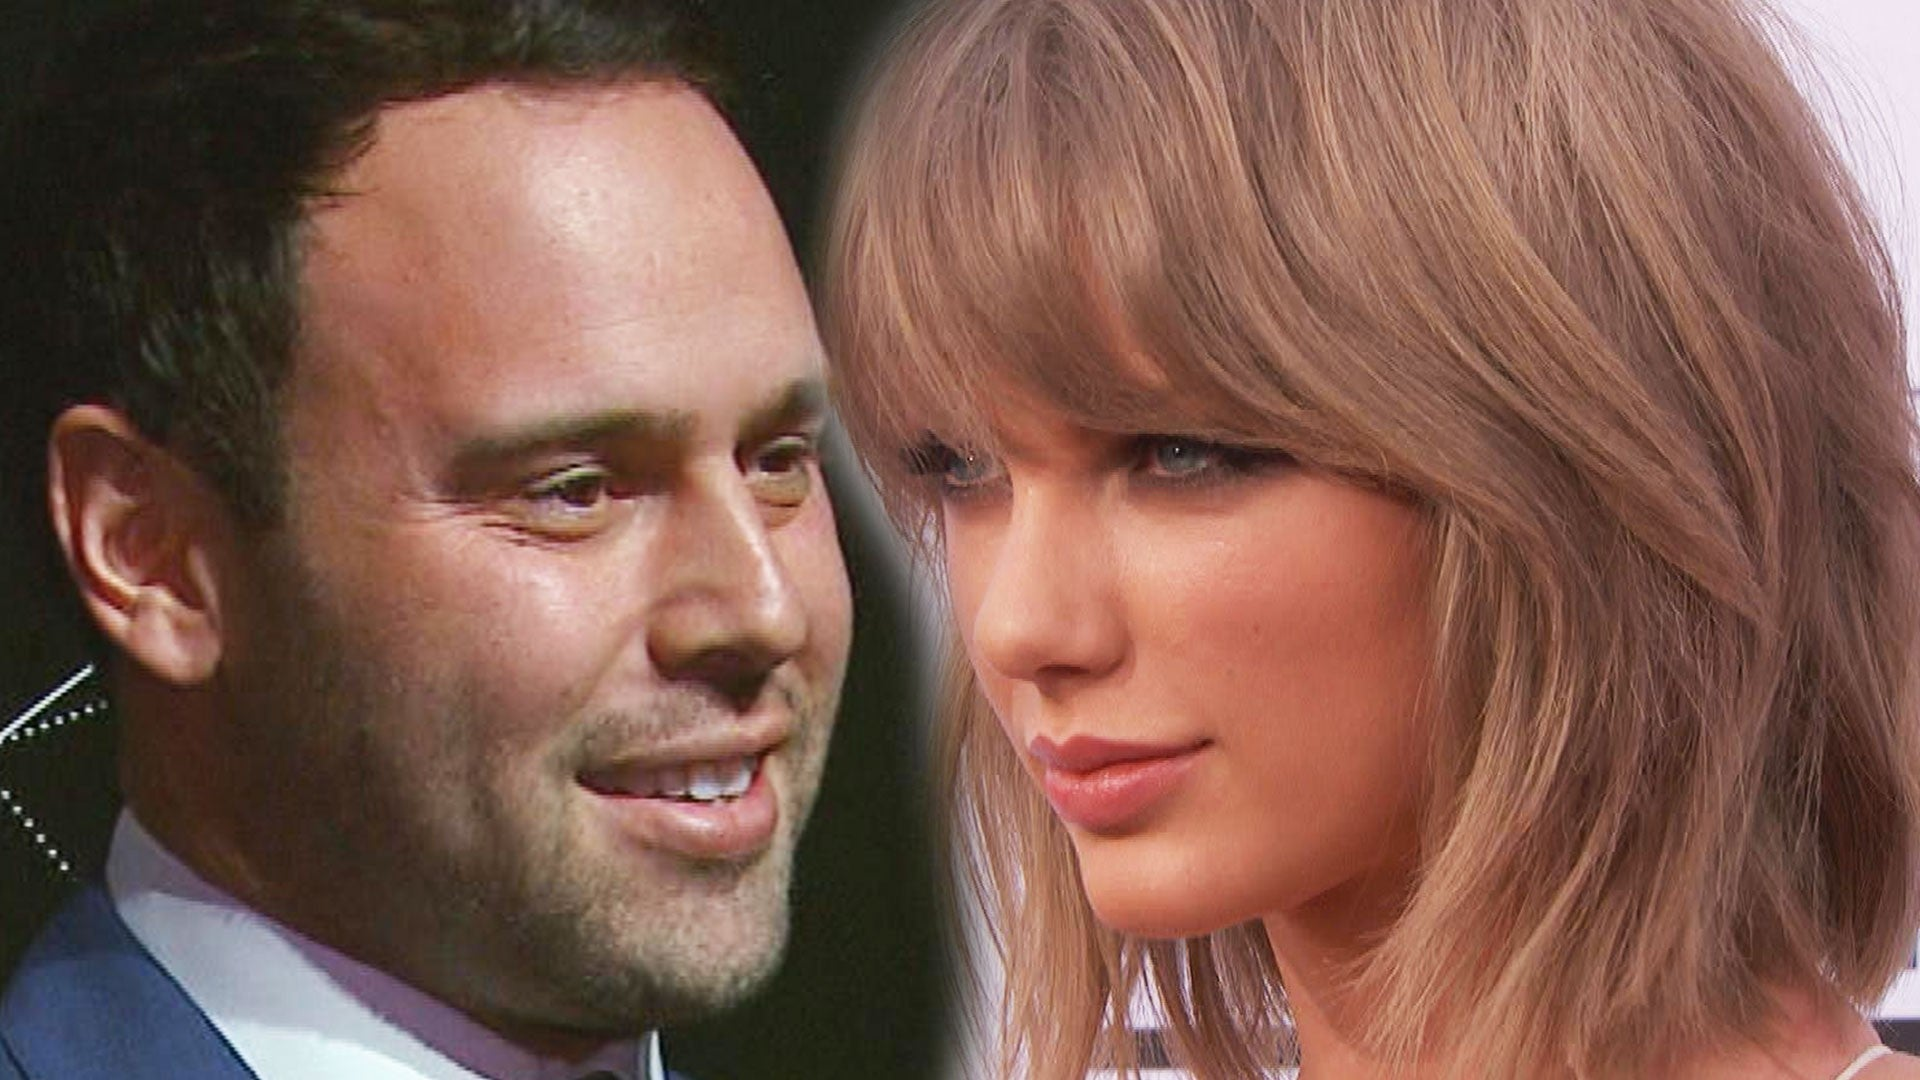 Taylor Swift Vs Scooter Braun A Timeline Of Their Big Machine Feud Entertainment Tonight